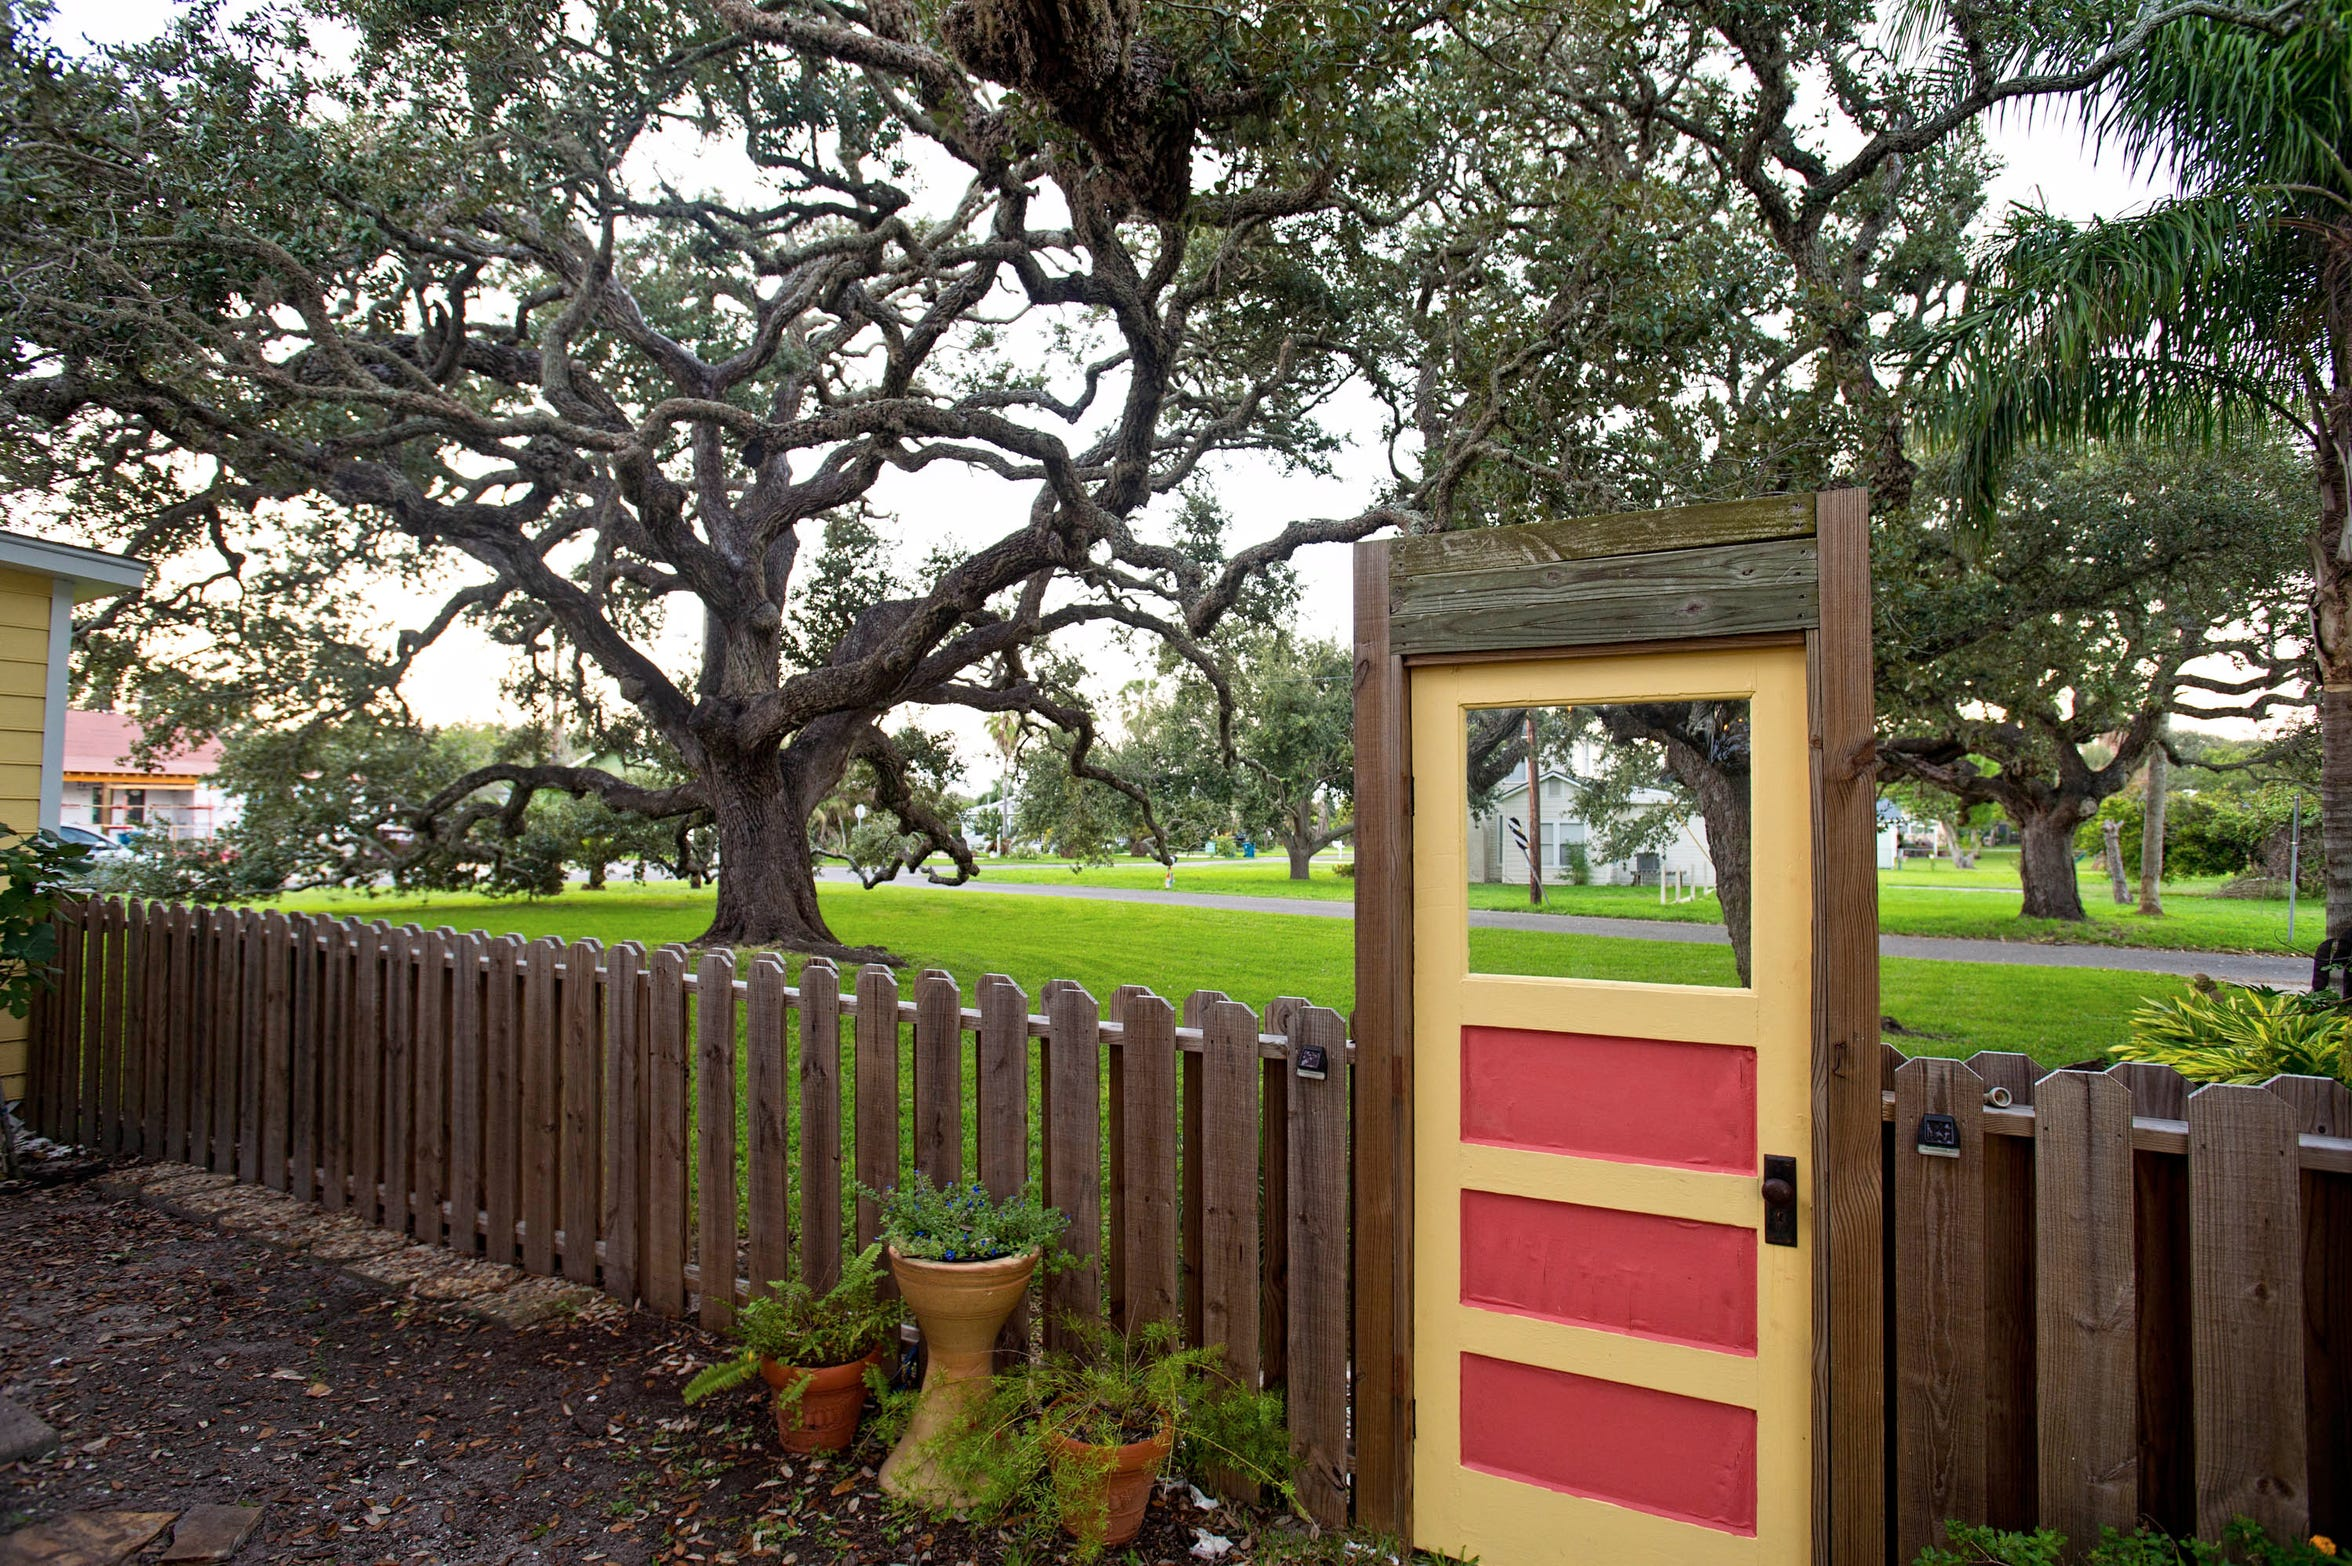 A huge ancient oak tree commands an entire corner lot on the property